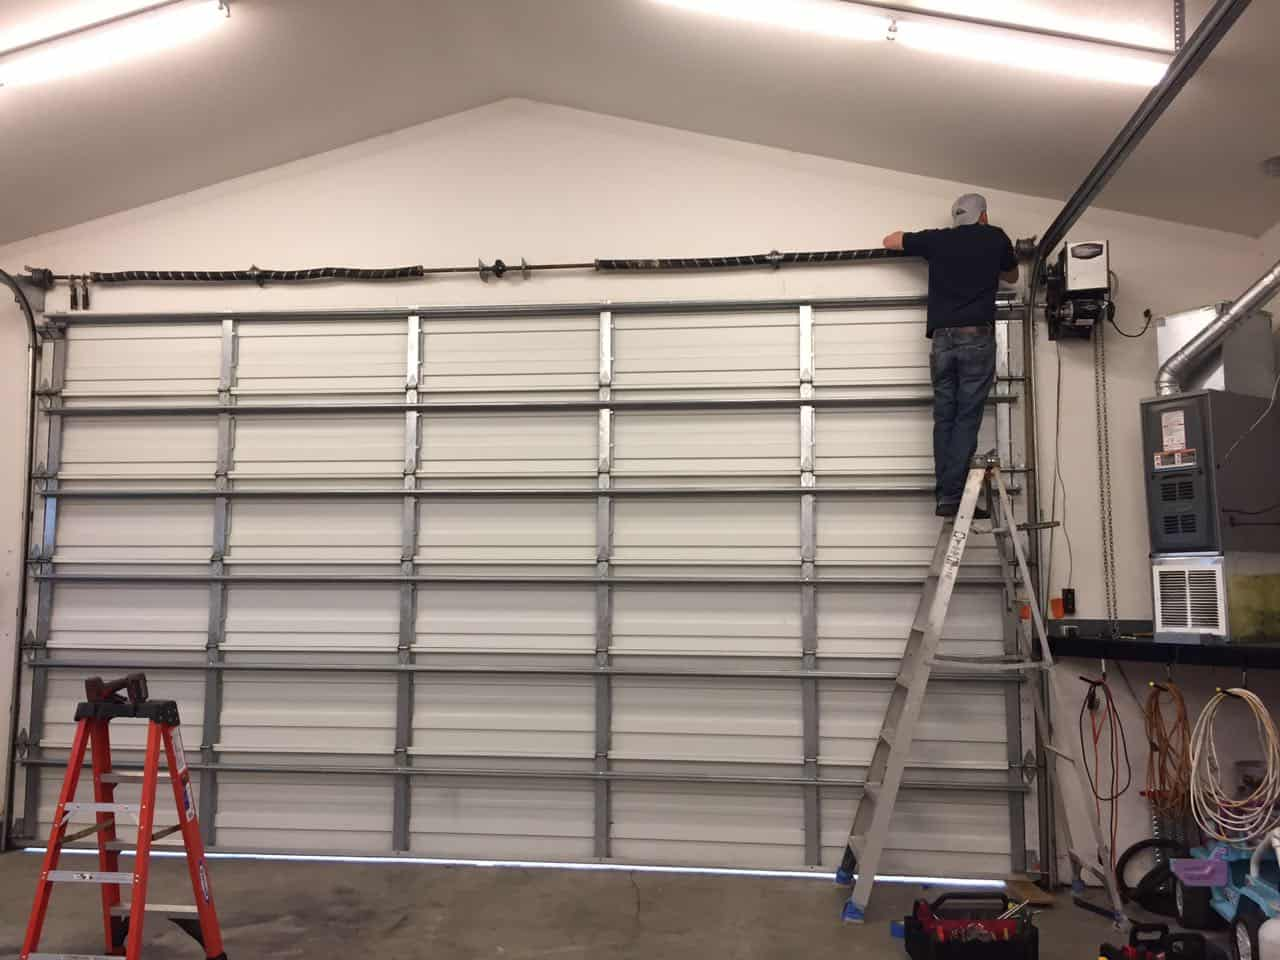 commercial garage door repair in sumner wa by elite tech